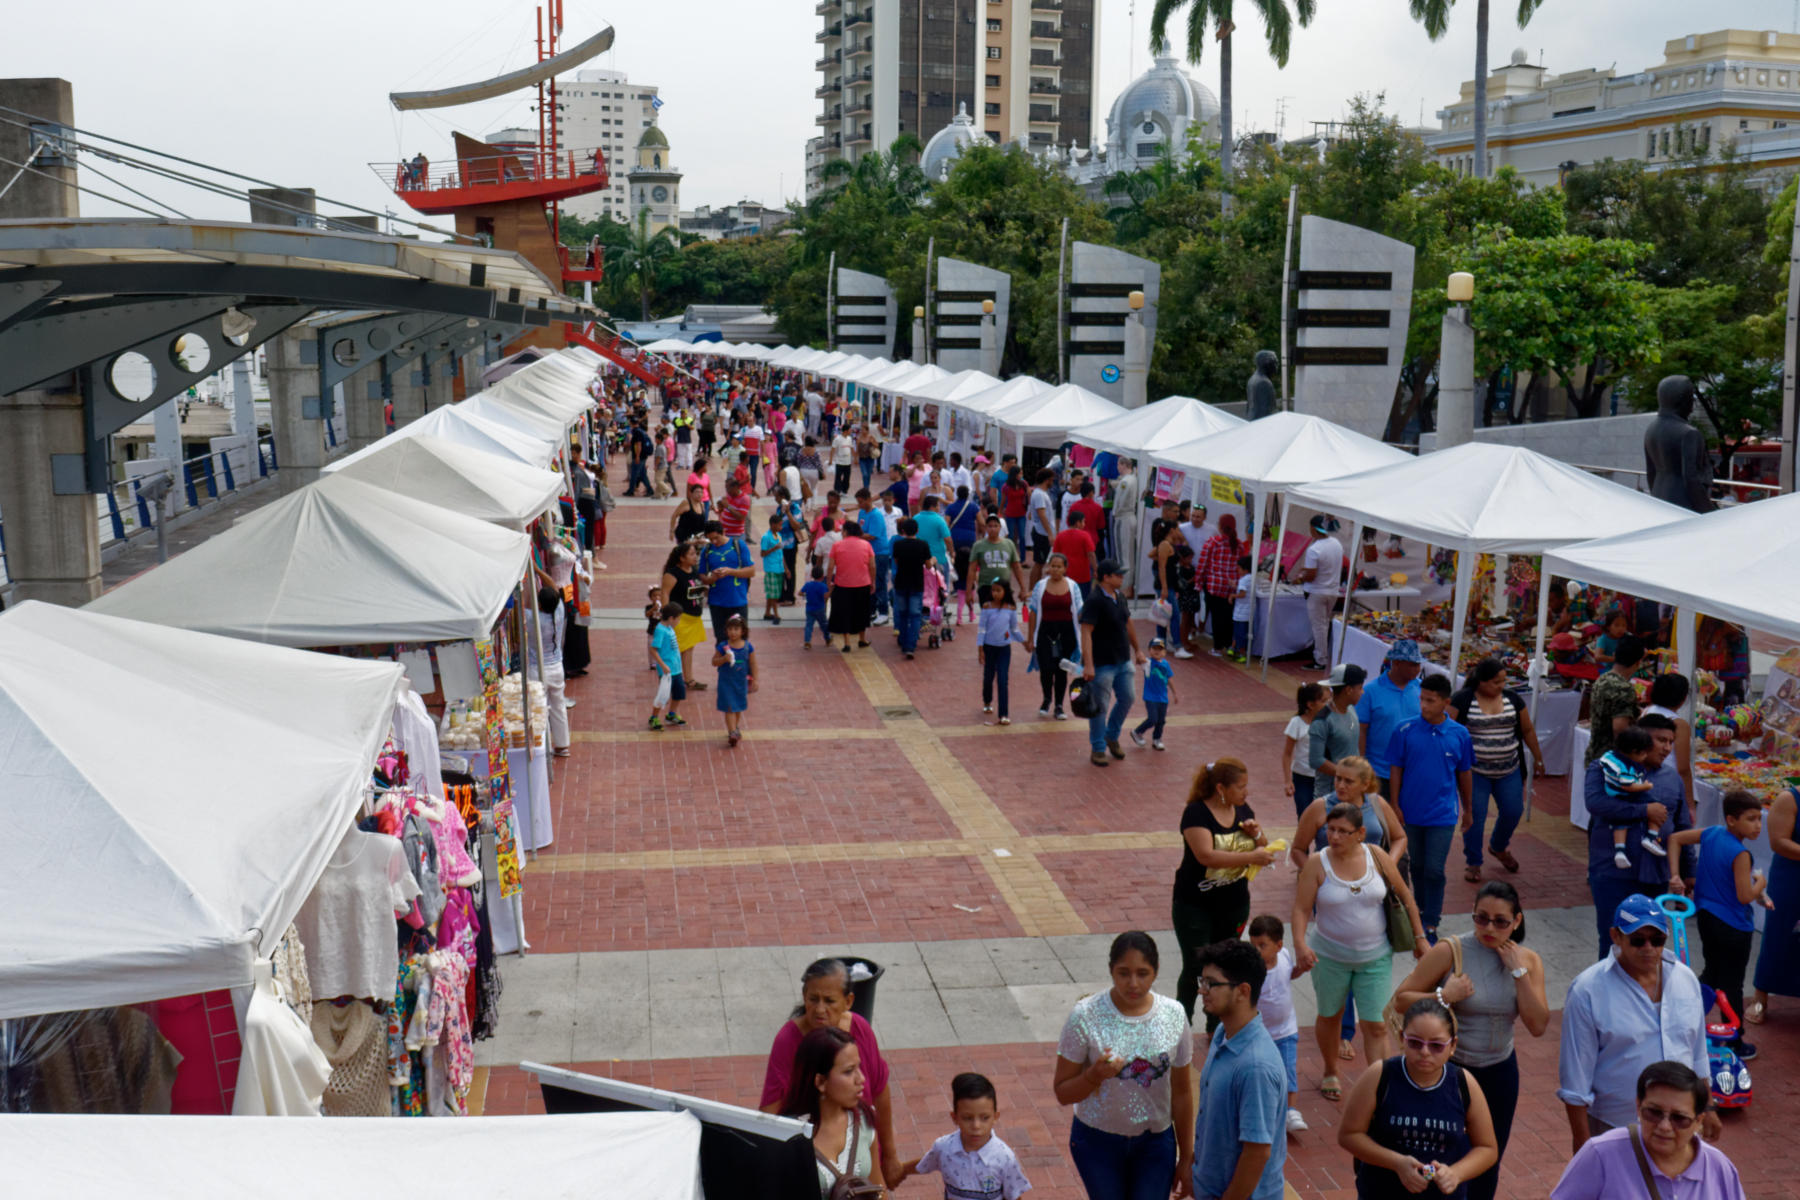 Holiday crowds on Guayaquil waterfront